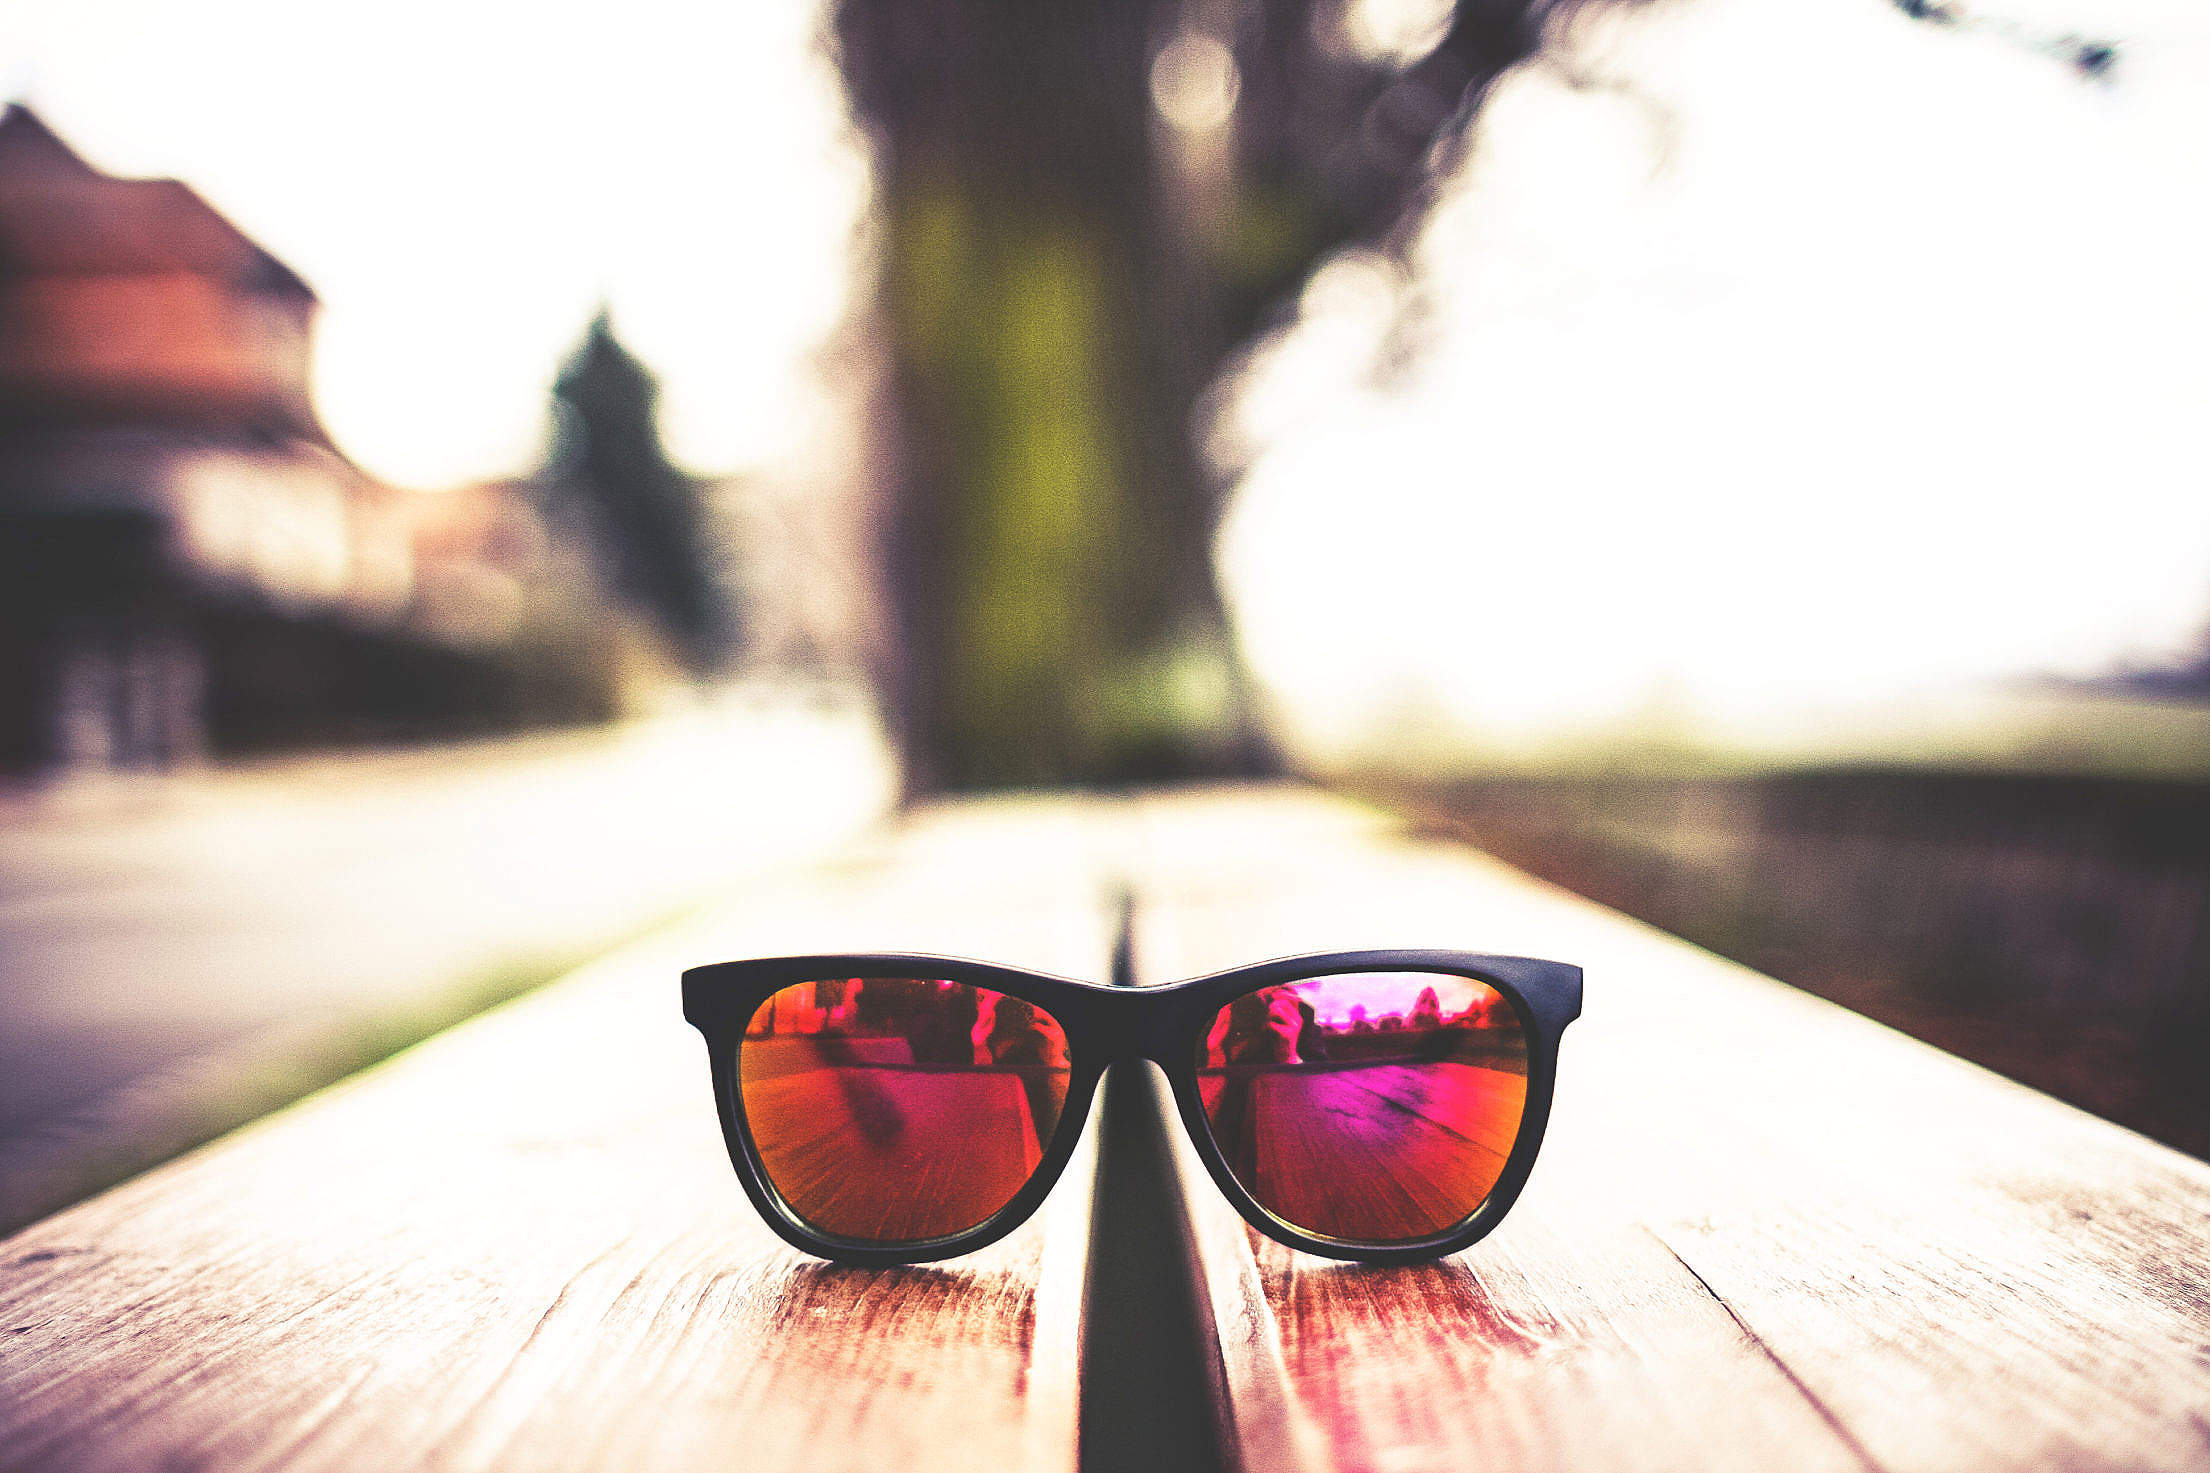 Red Fashion Glasses on Wooden Table Free Stock Photo